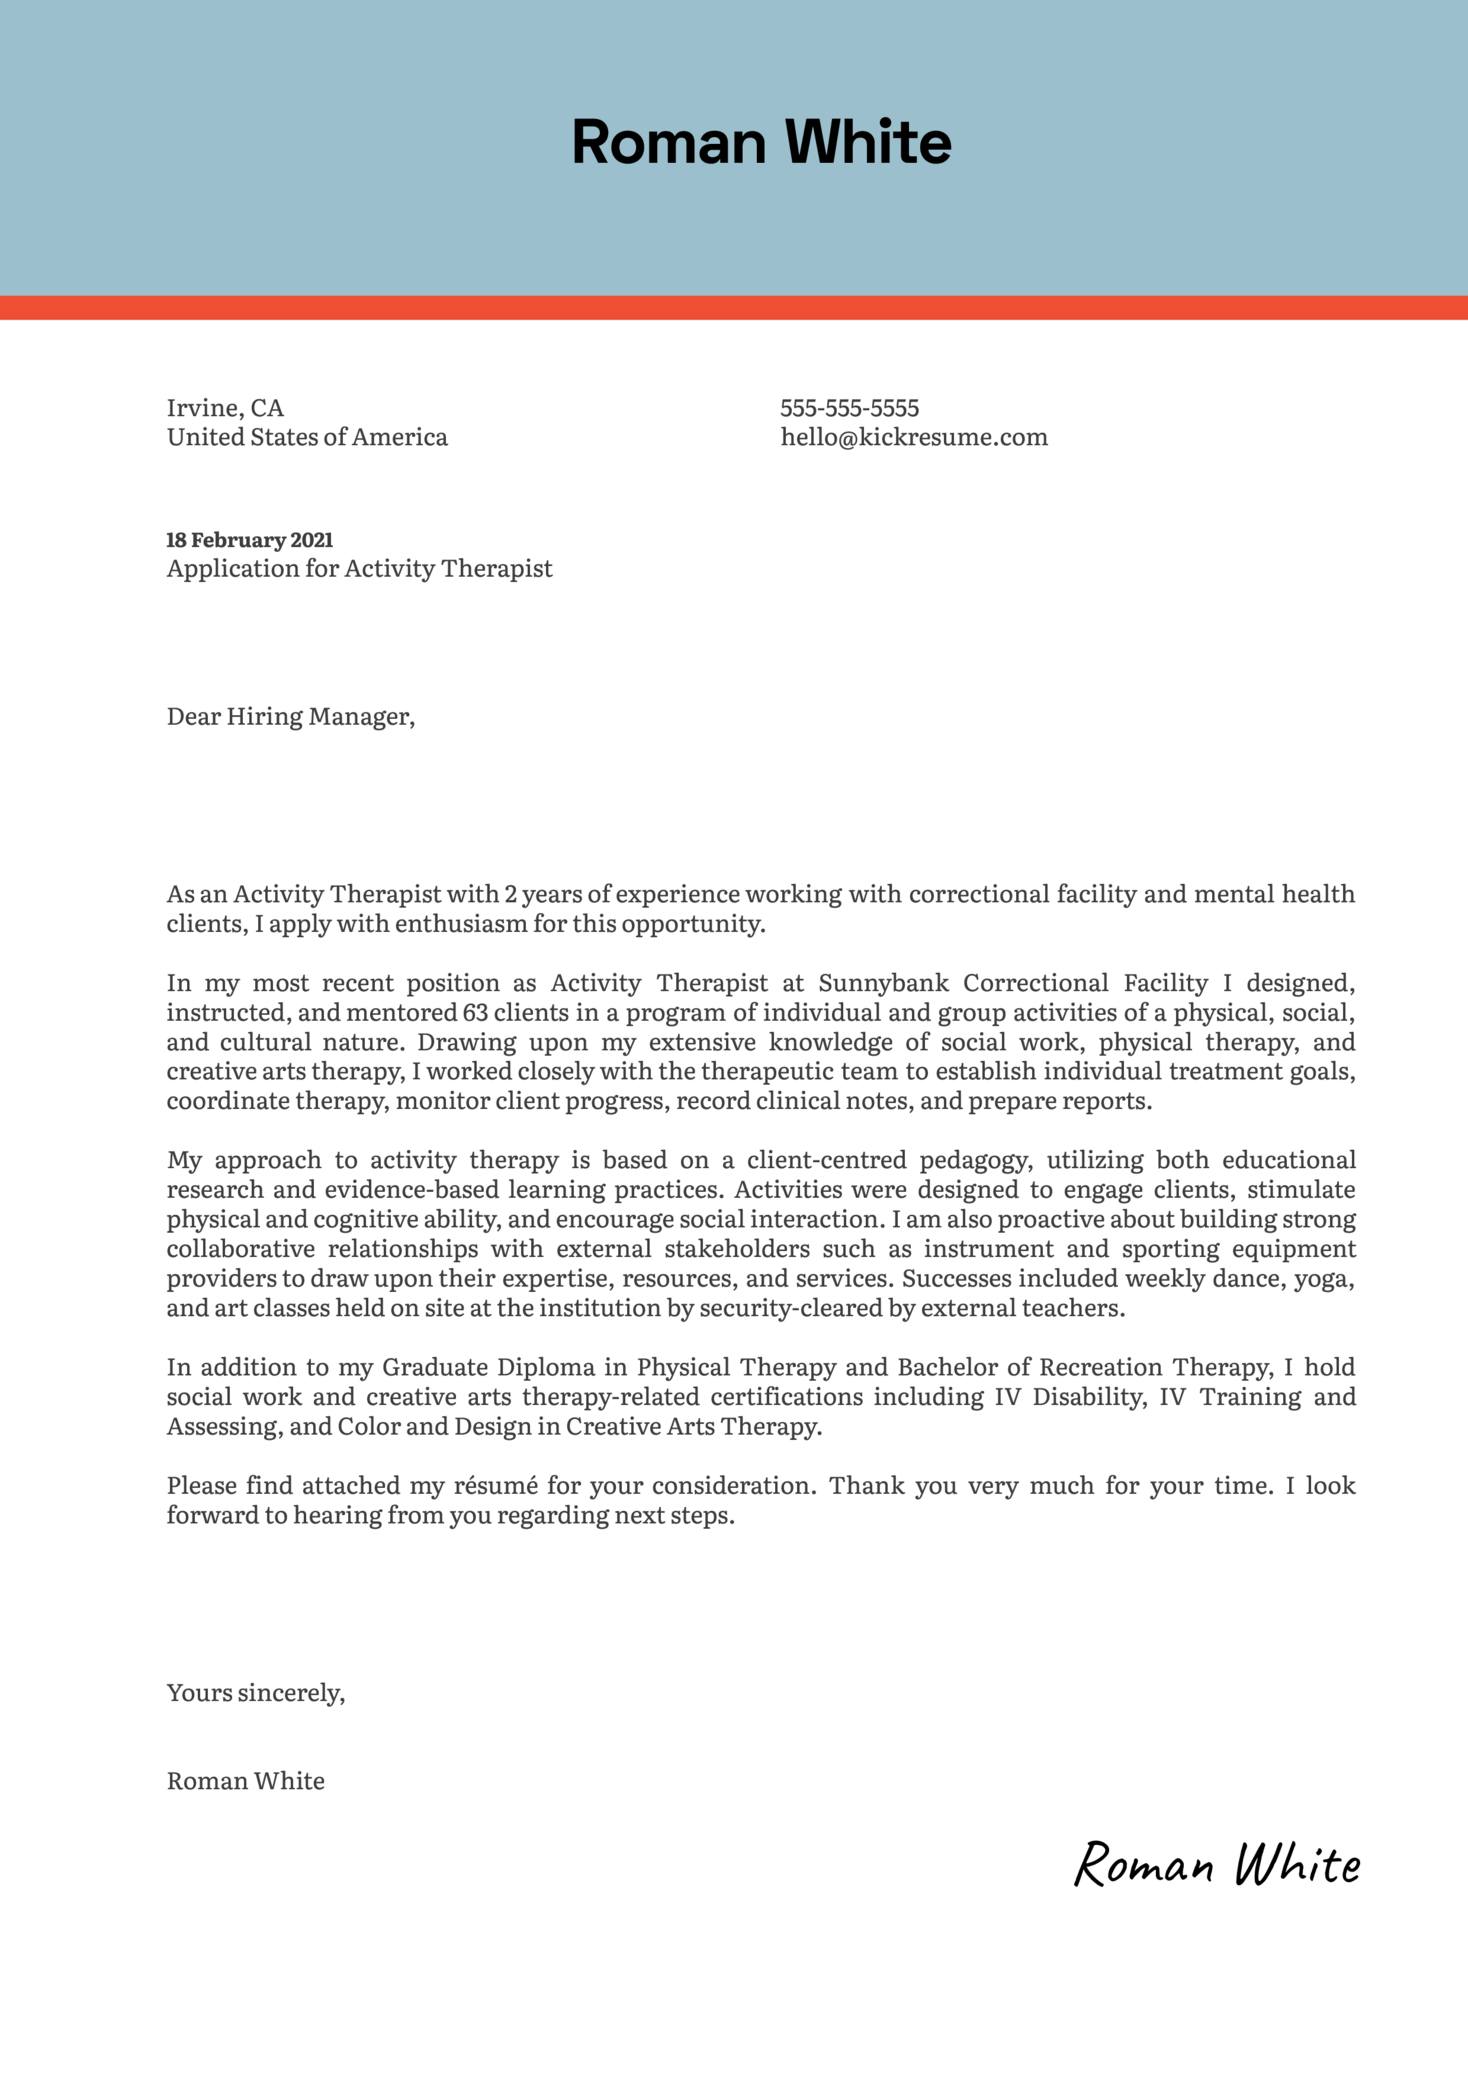 Activity Therapist Cover Letter Example